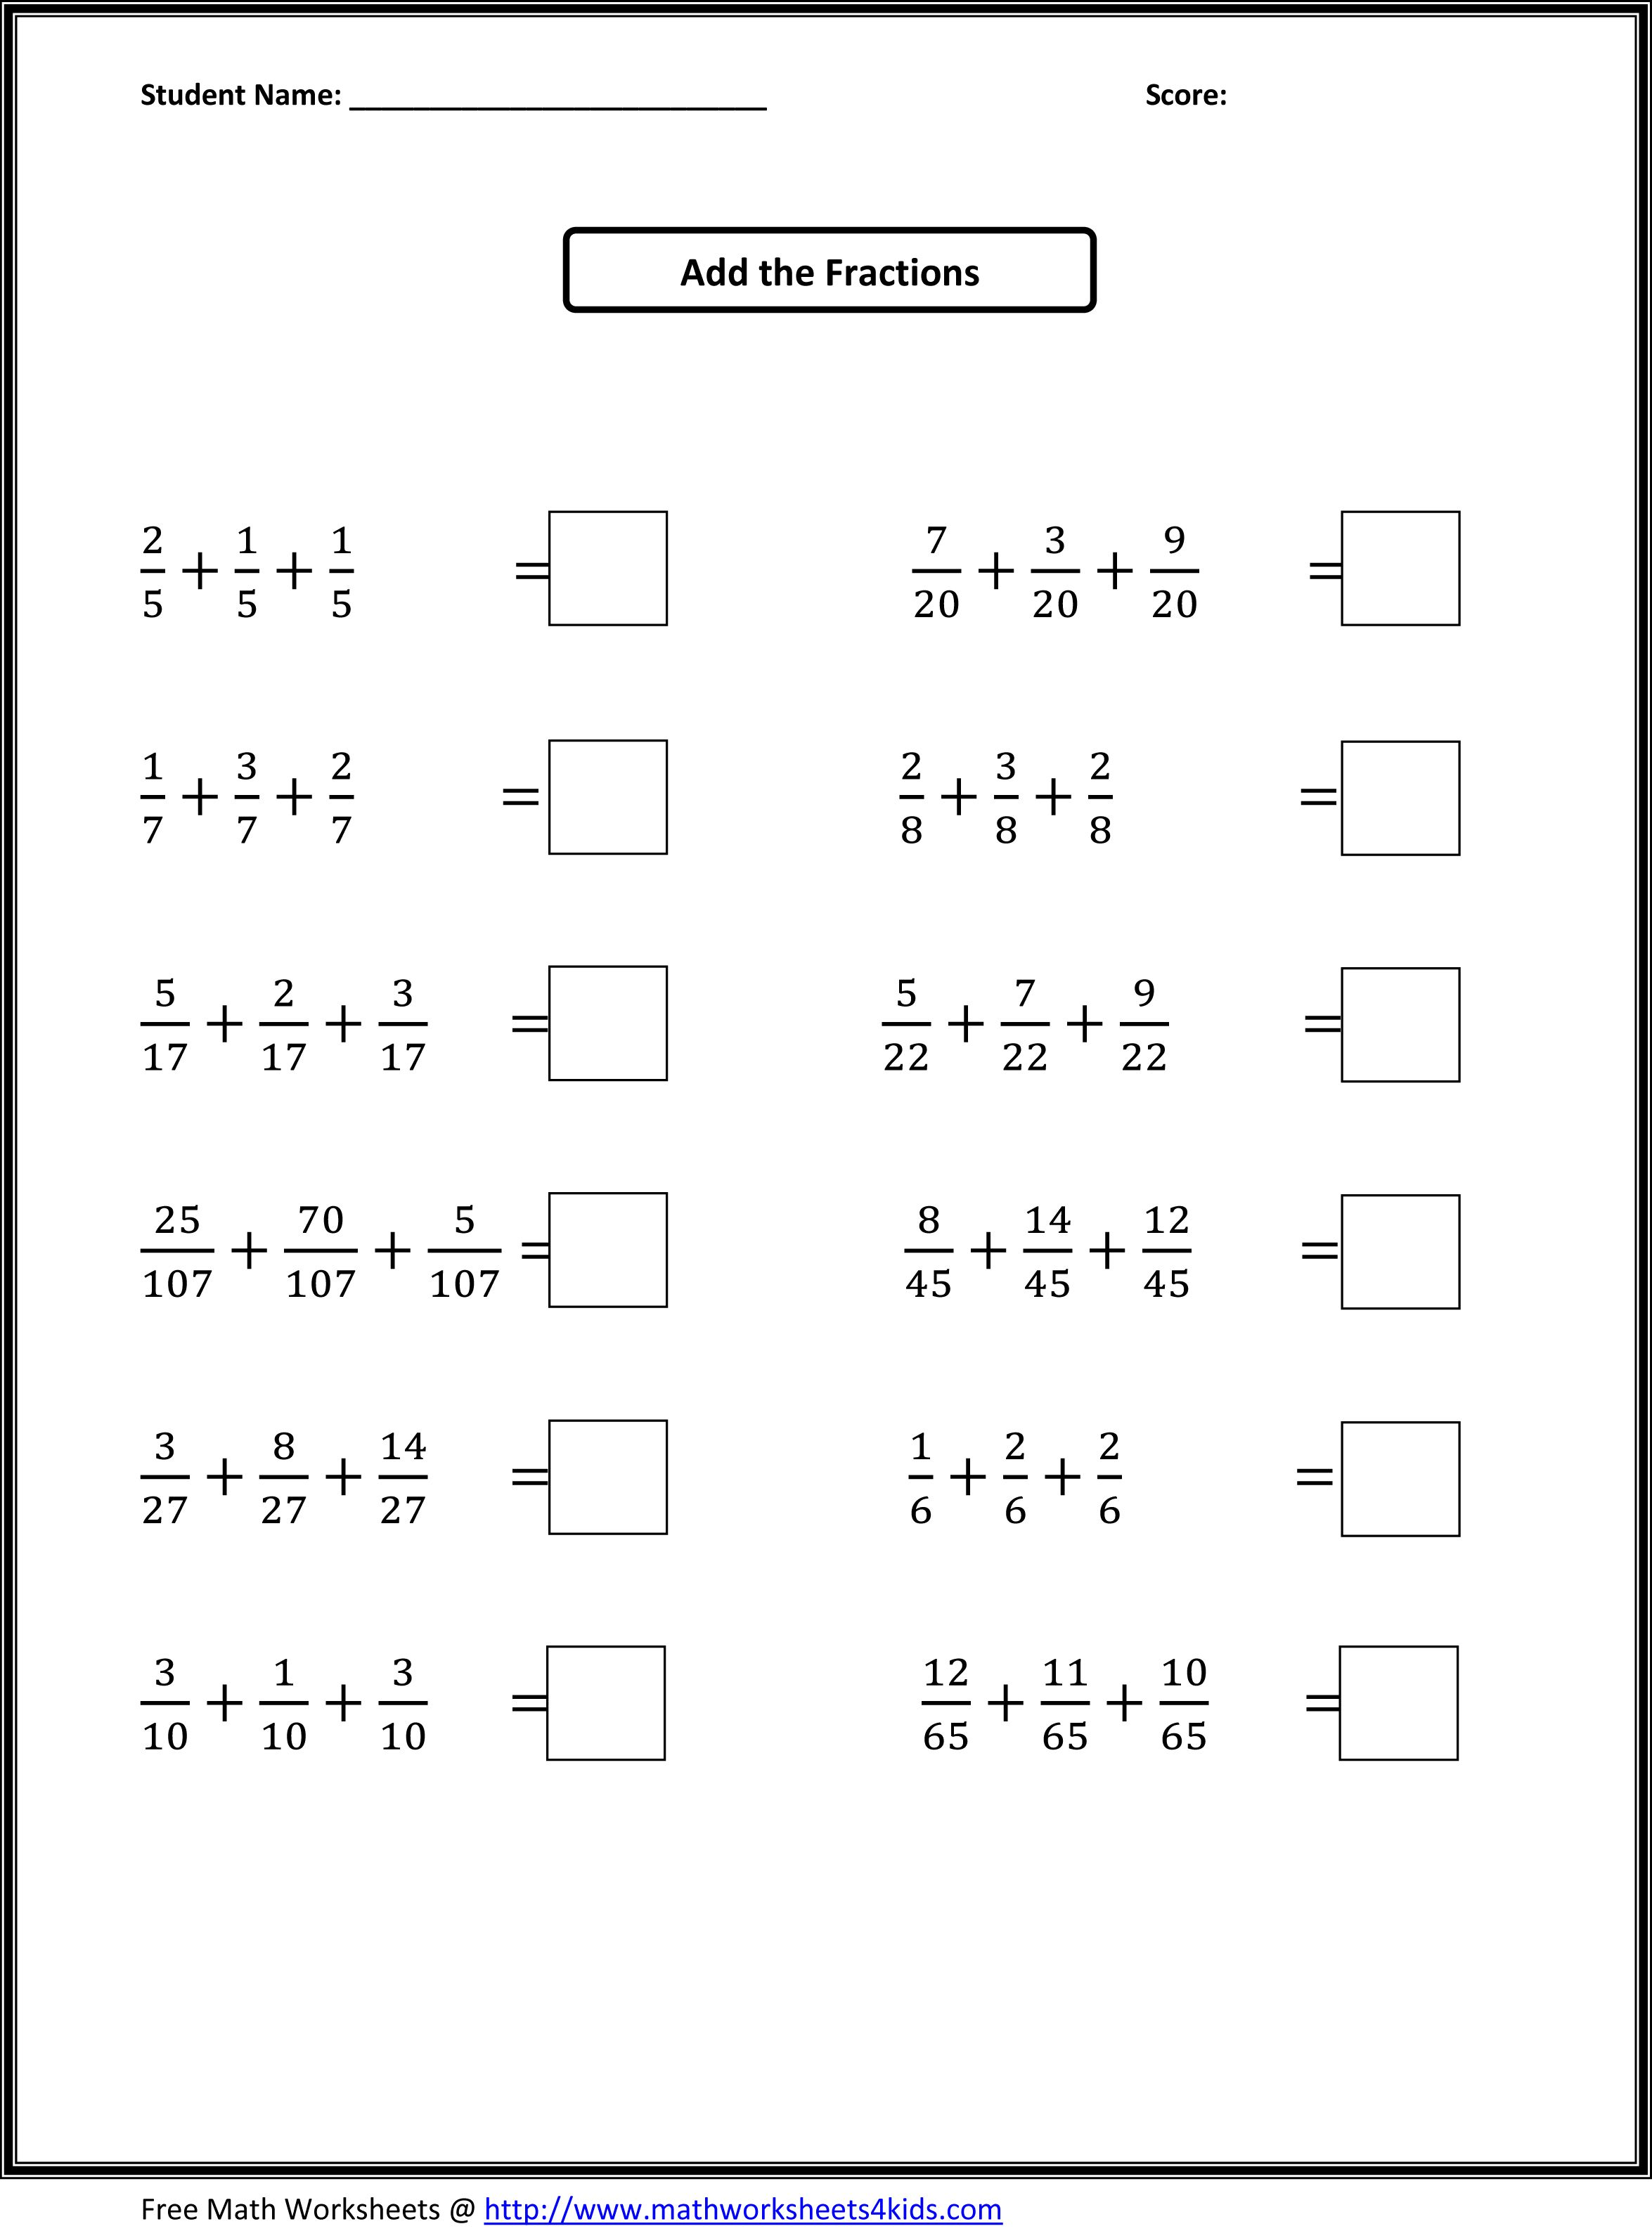 math worksheet : fractions easy work and math worksheets on pinterest : Fraction Division Worksheet